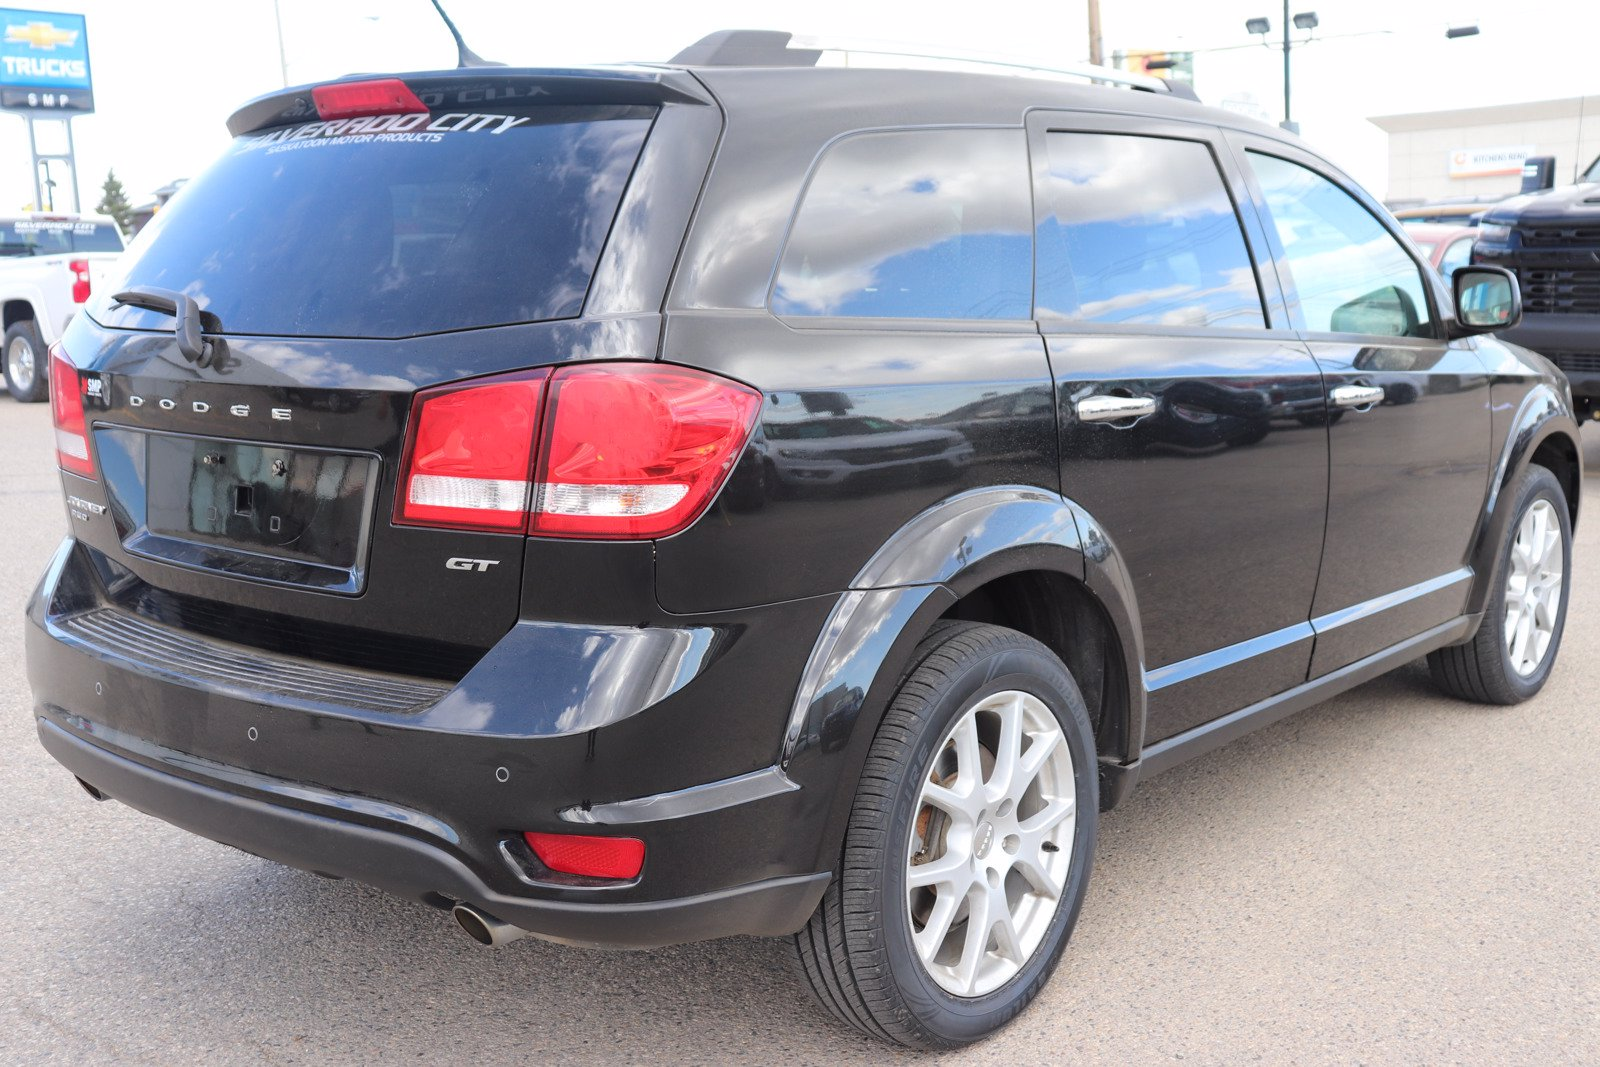 Certified Pre-Owned 2017 Dodge Journey GT- AWD, Leather, Remote Start, 7 Passenger, New Tires